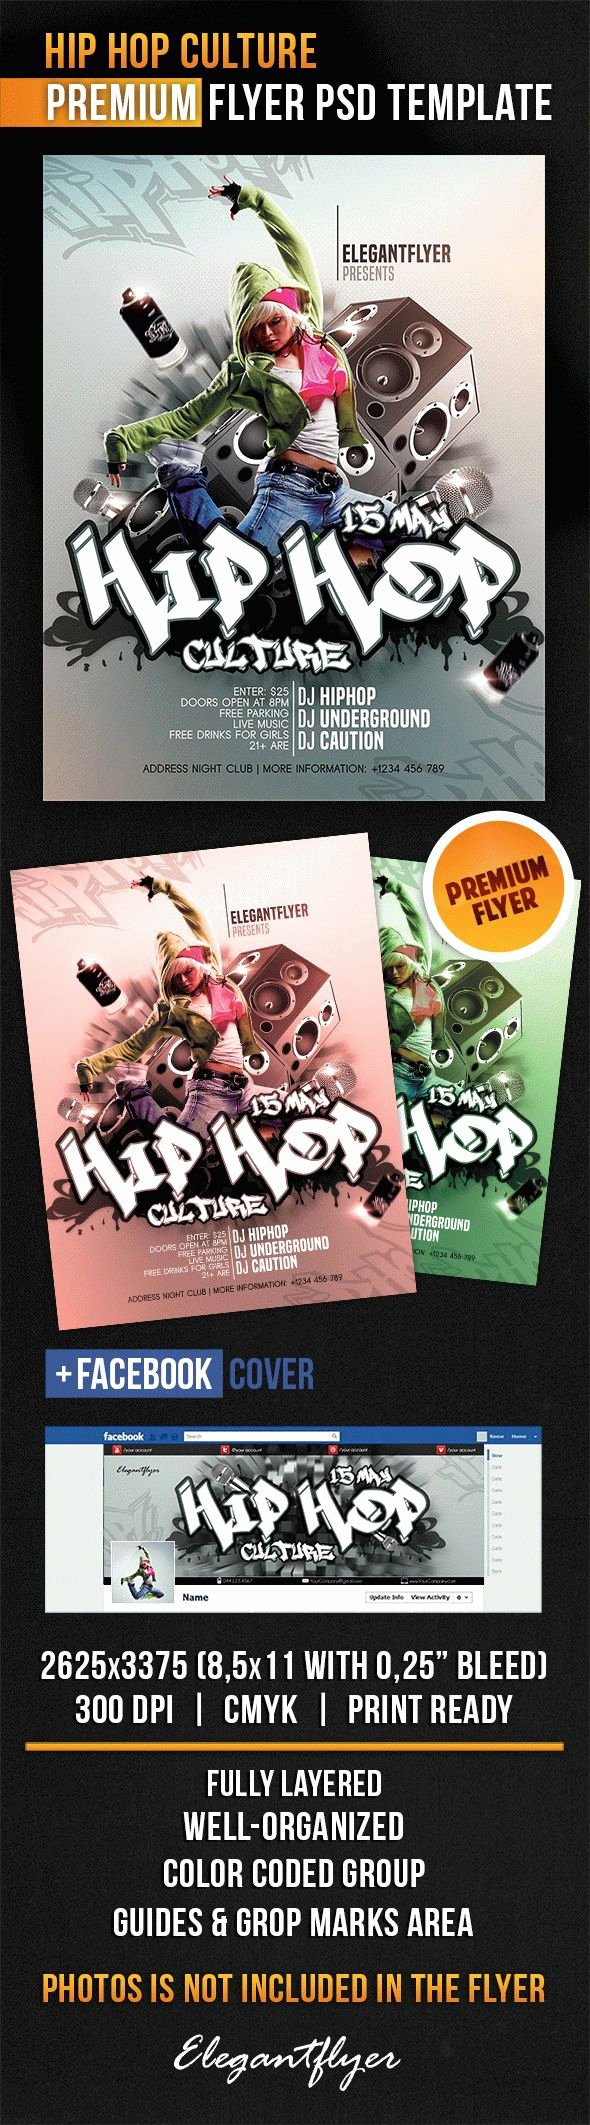 Hip Hop Flyer Templates Fresh Hip Hop Culture Flyer Psd Template Cover